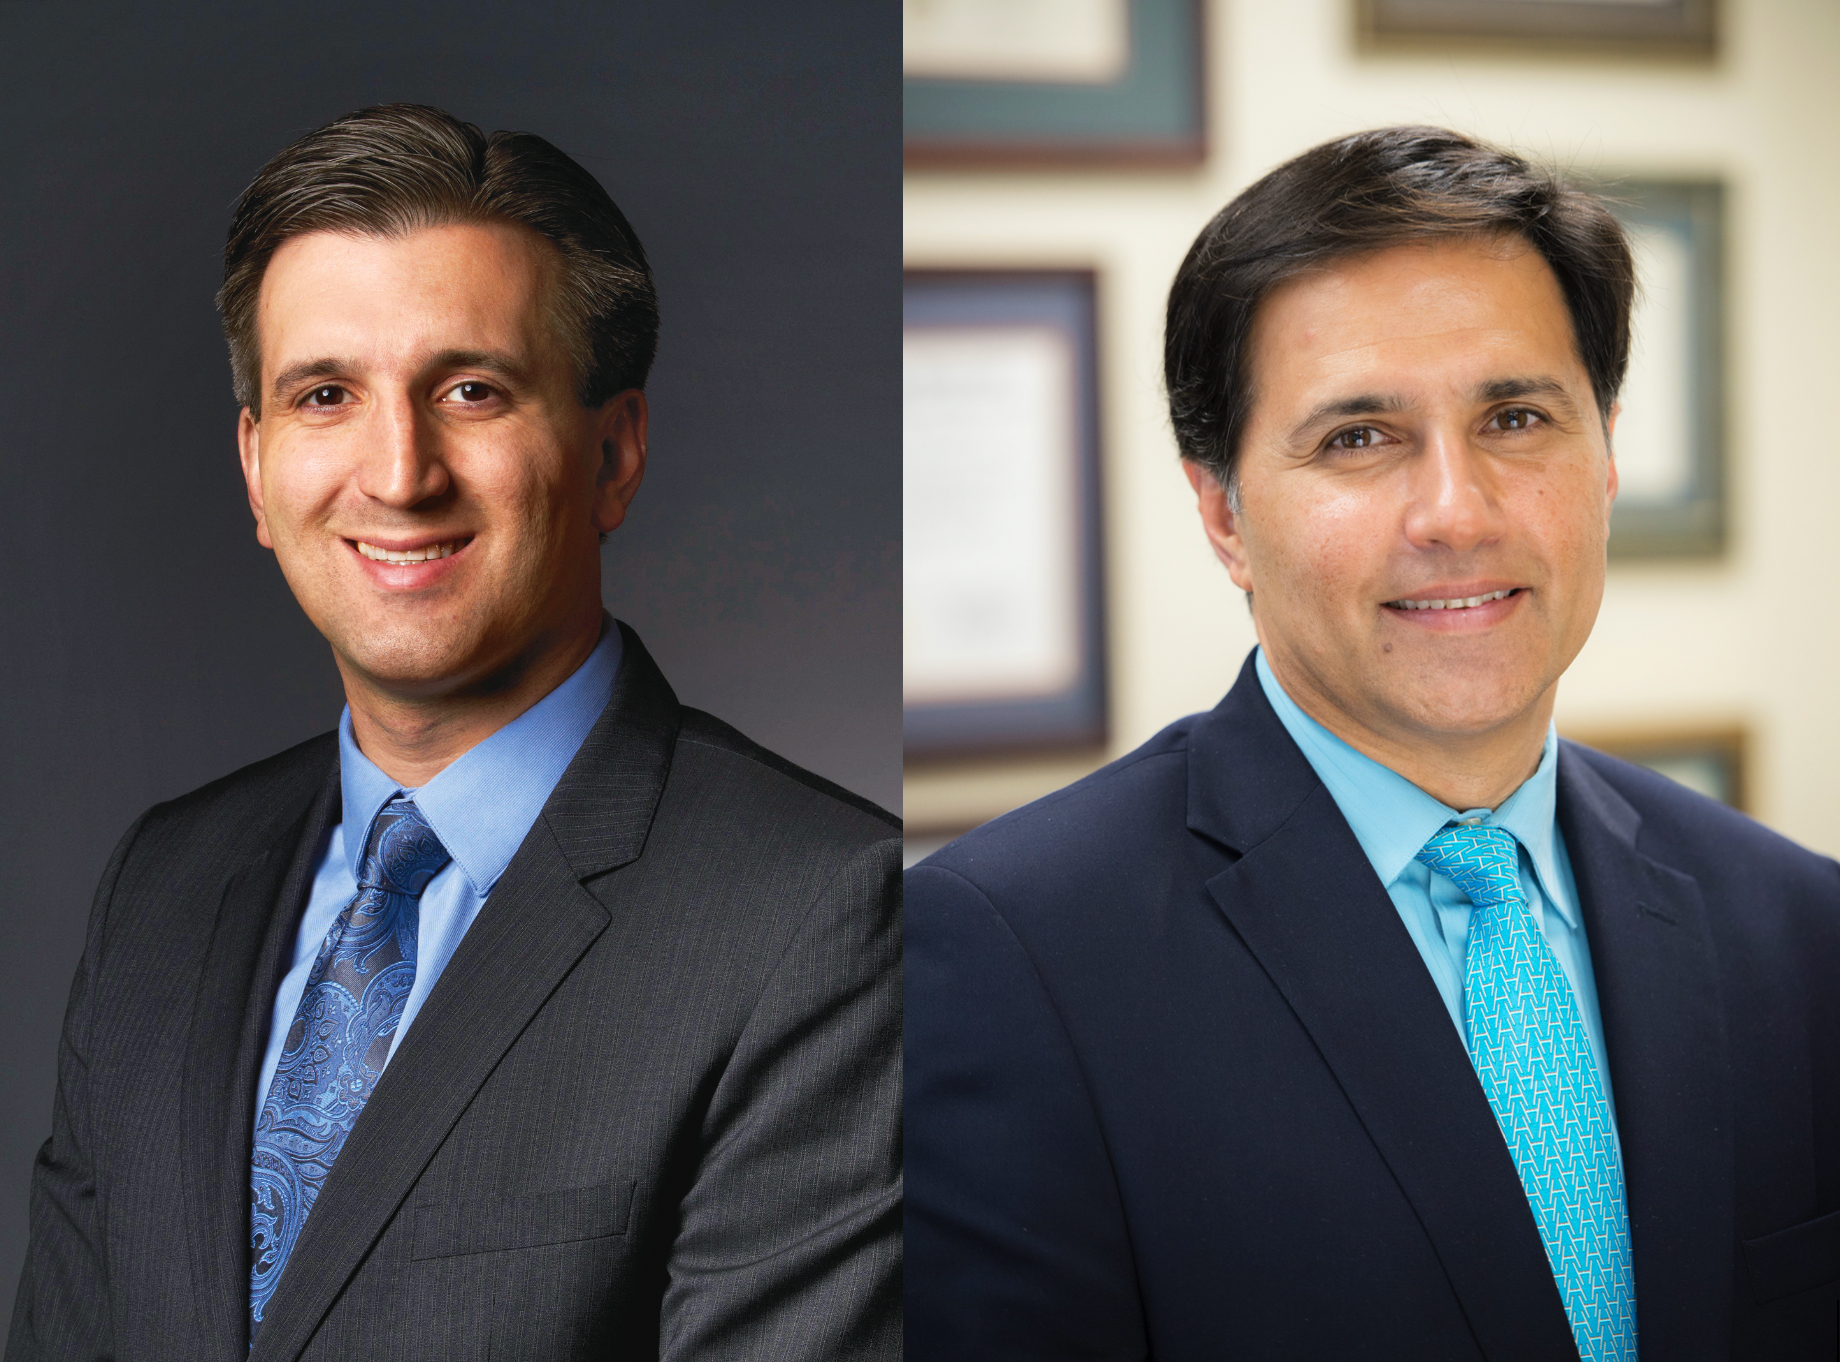 Vitreoretinal surgeons Amir Kashani, MD, PhD (left) and Mark Humayun, MD, PhD (right) pioneered a new surgical procedure to treat dry age-related macular degeneration.